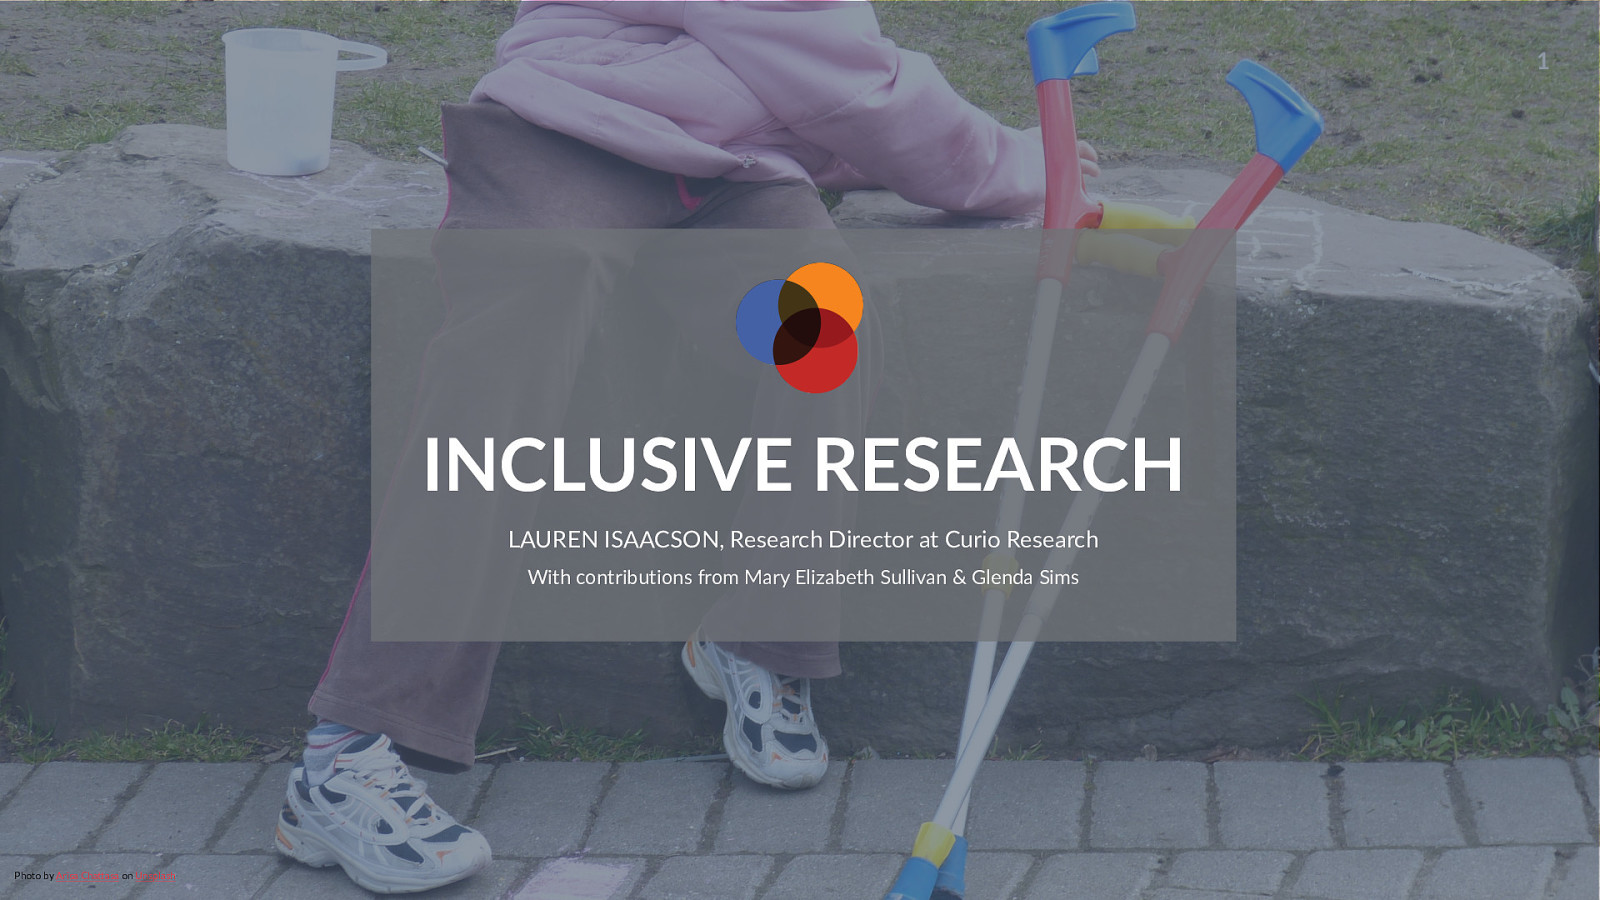 Inclusive Research - Making research accessible to people with disabilities